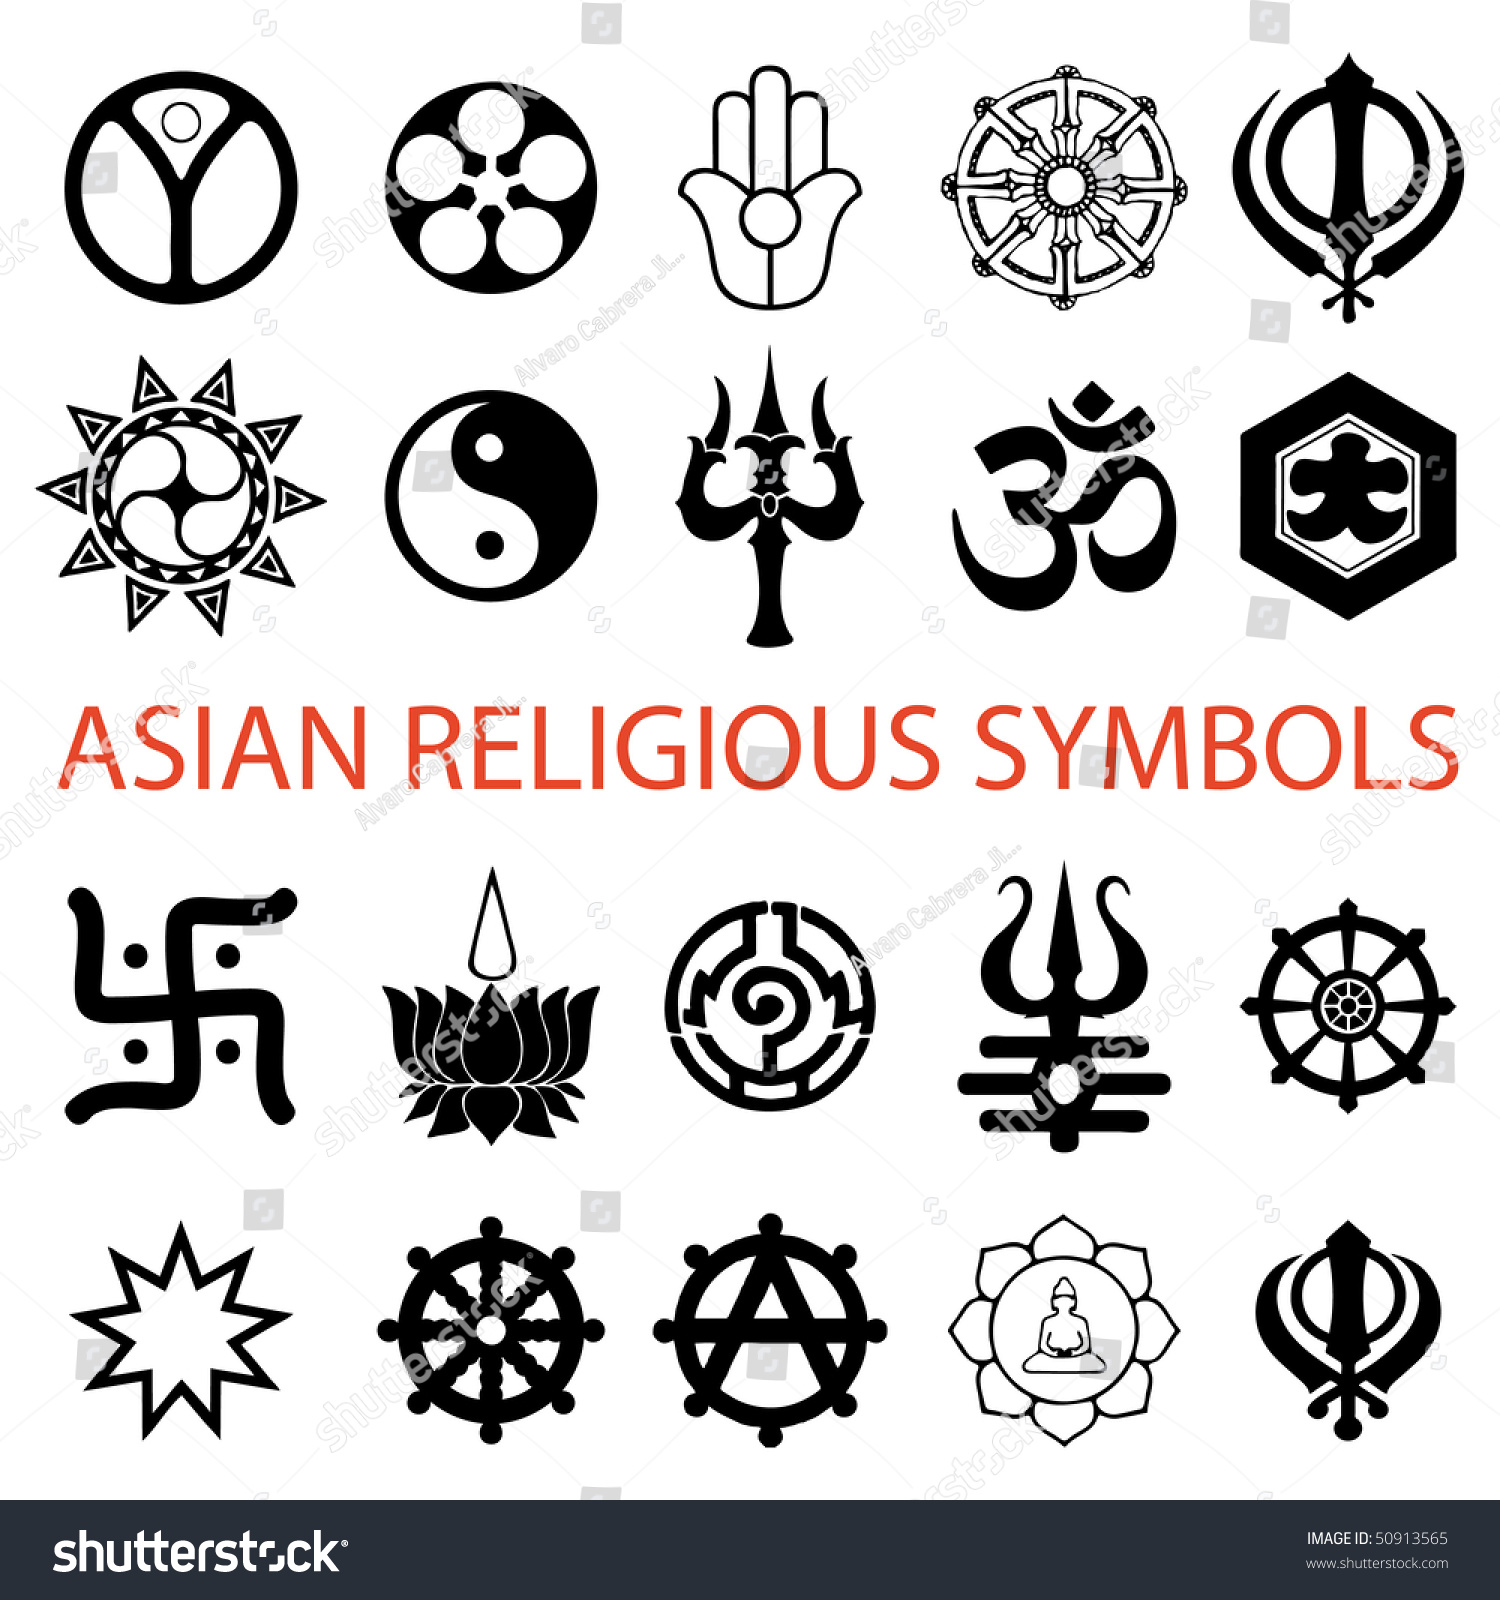 Vector Various Religious Symbols Asian Stock Vector 50913565